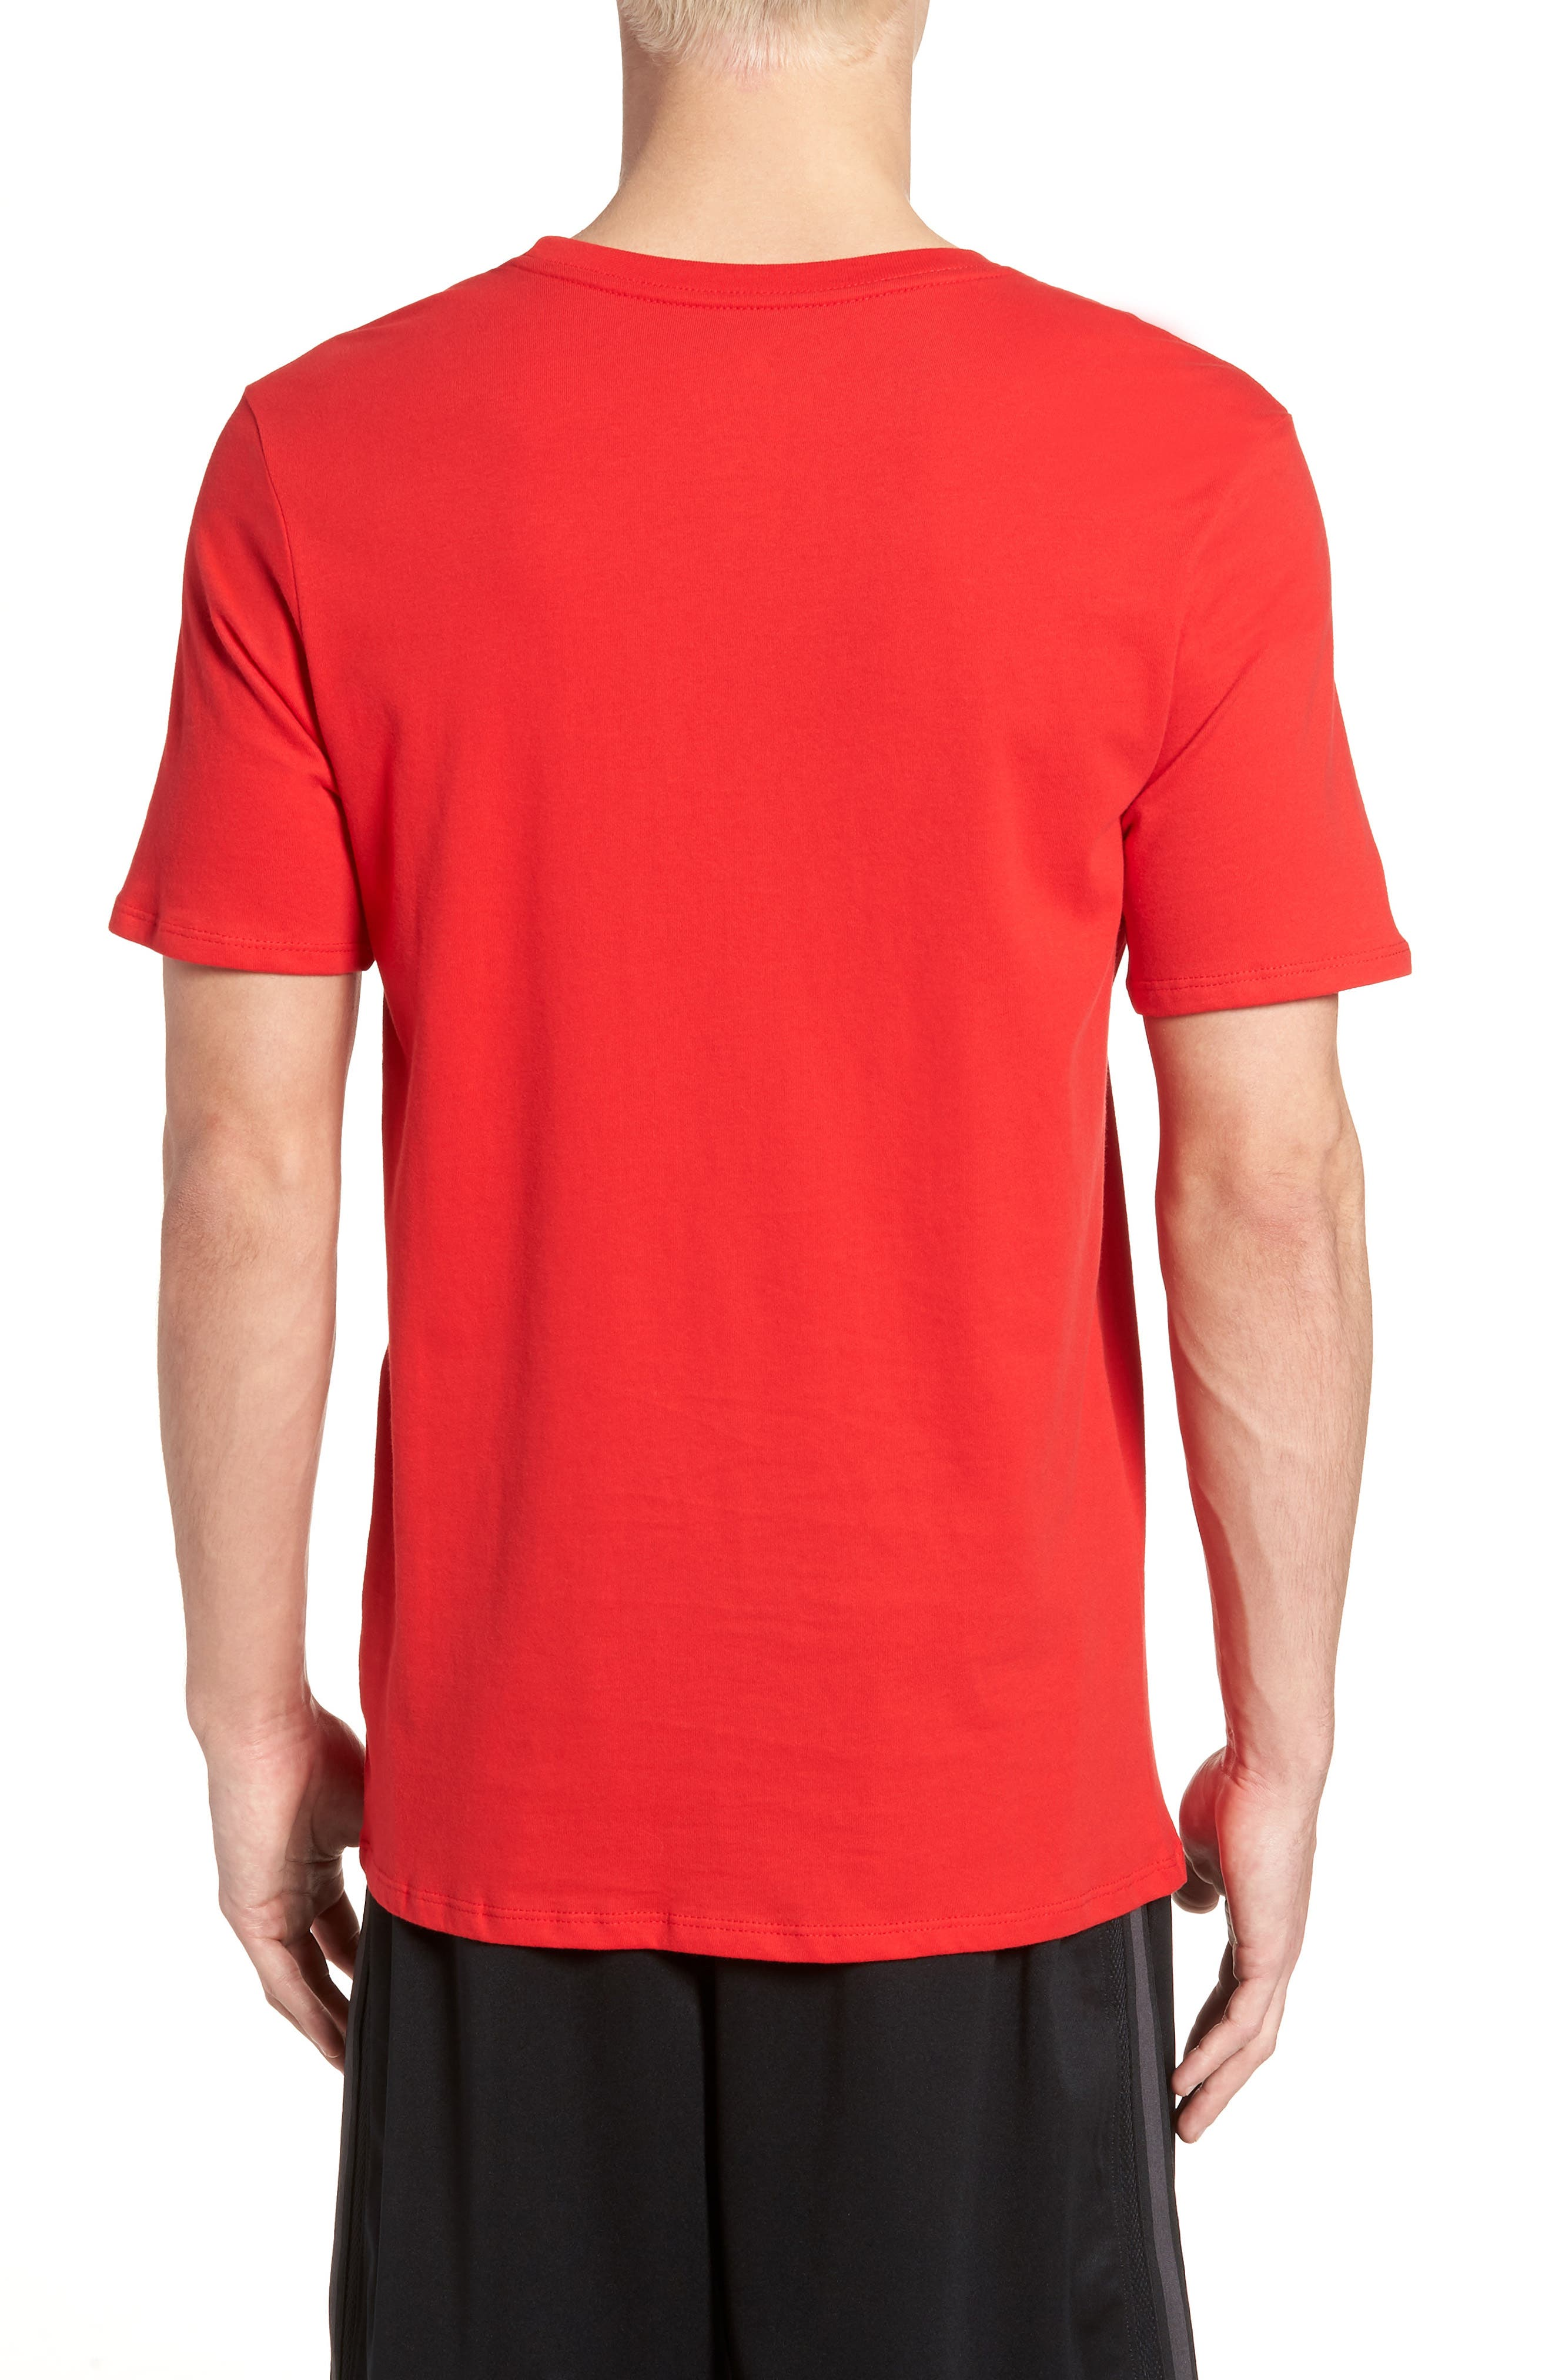 'Tee-Futura Icon' Graphic T-Shirt,                             Alternate thumbnail 2, color,                             Red/ Black